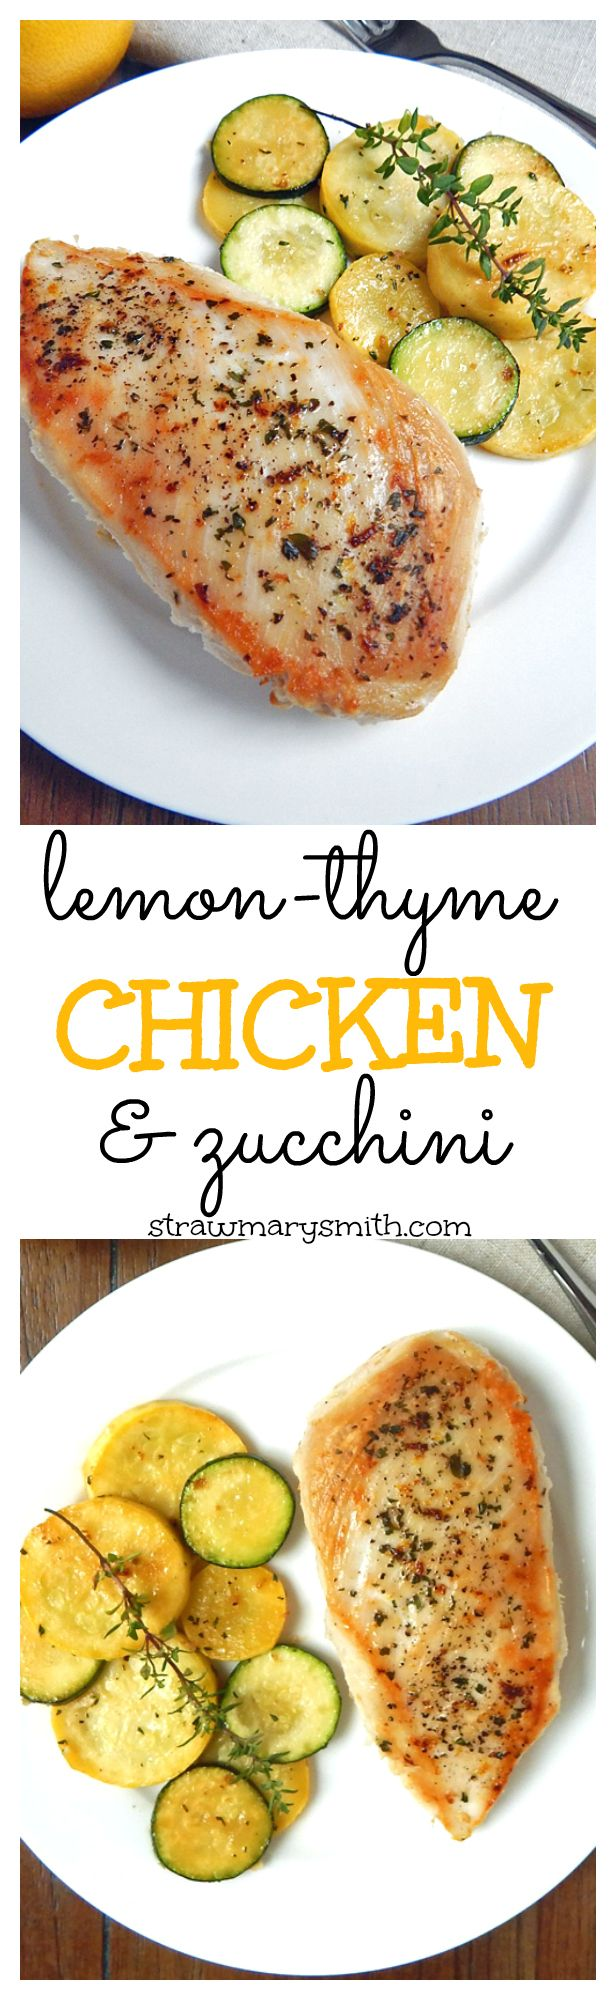 Lemon-Thyme Chicken & Zucchini is your light & simple dinner for two! Herbed and tangy chicken with a side of flavorful zucchini - made in just 15 minutes!